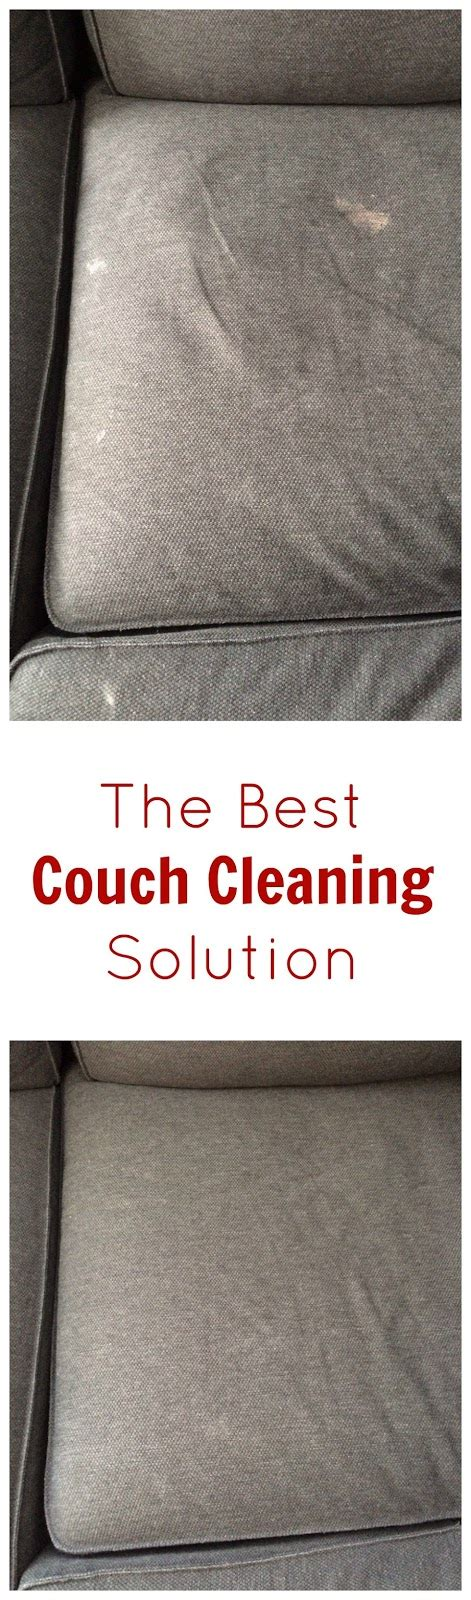 couch cleaning solution the best couch cleaning solution lou lou girls